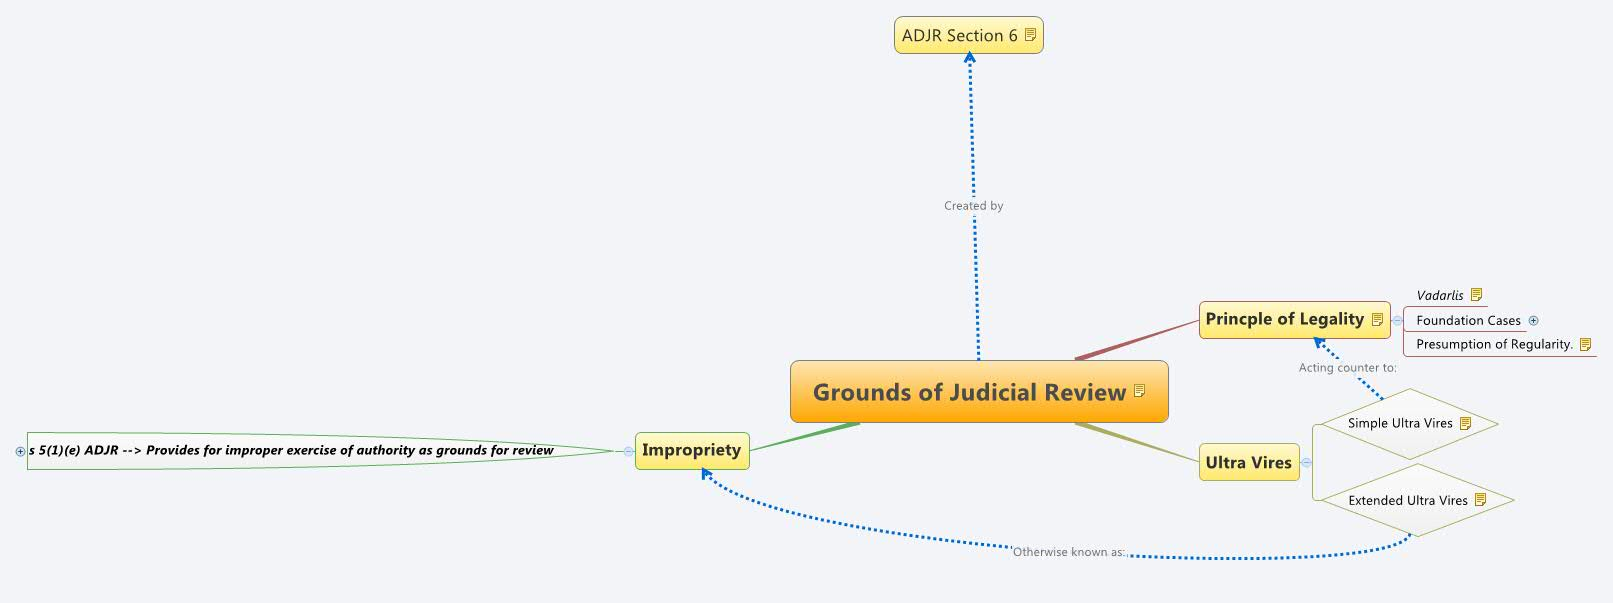 Judicial Review Grounds – An Overview